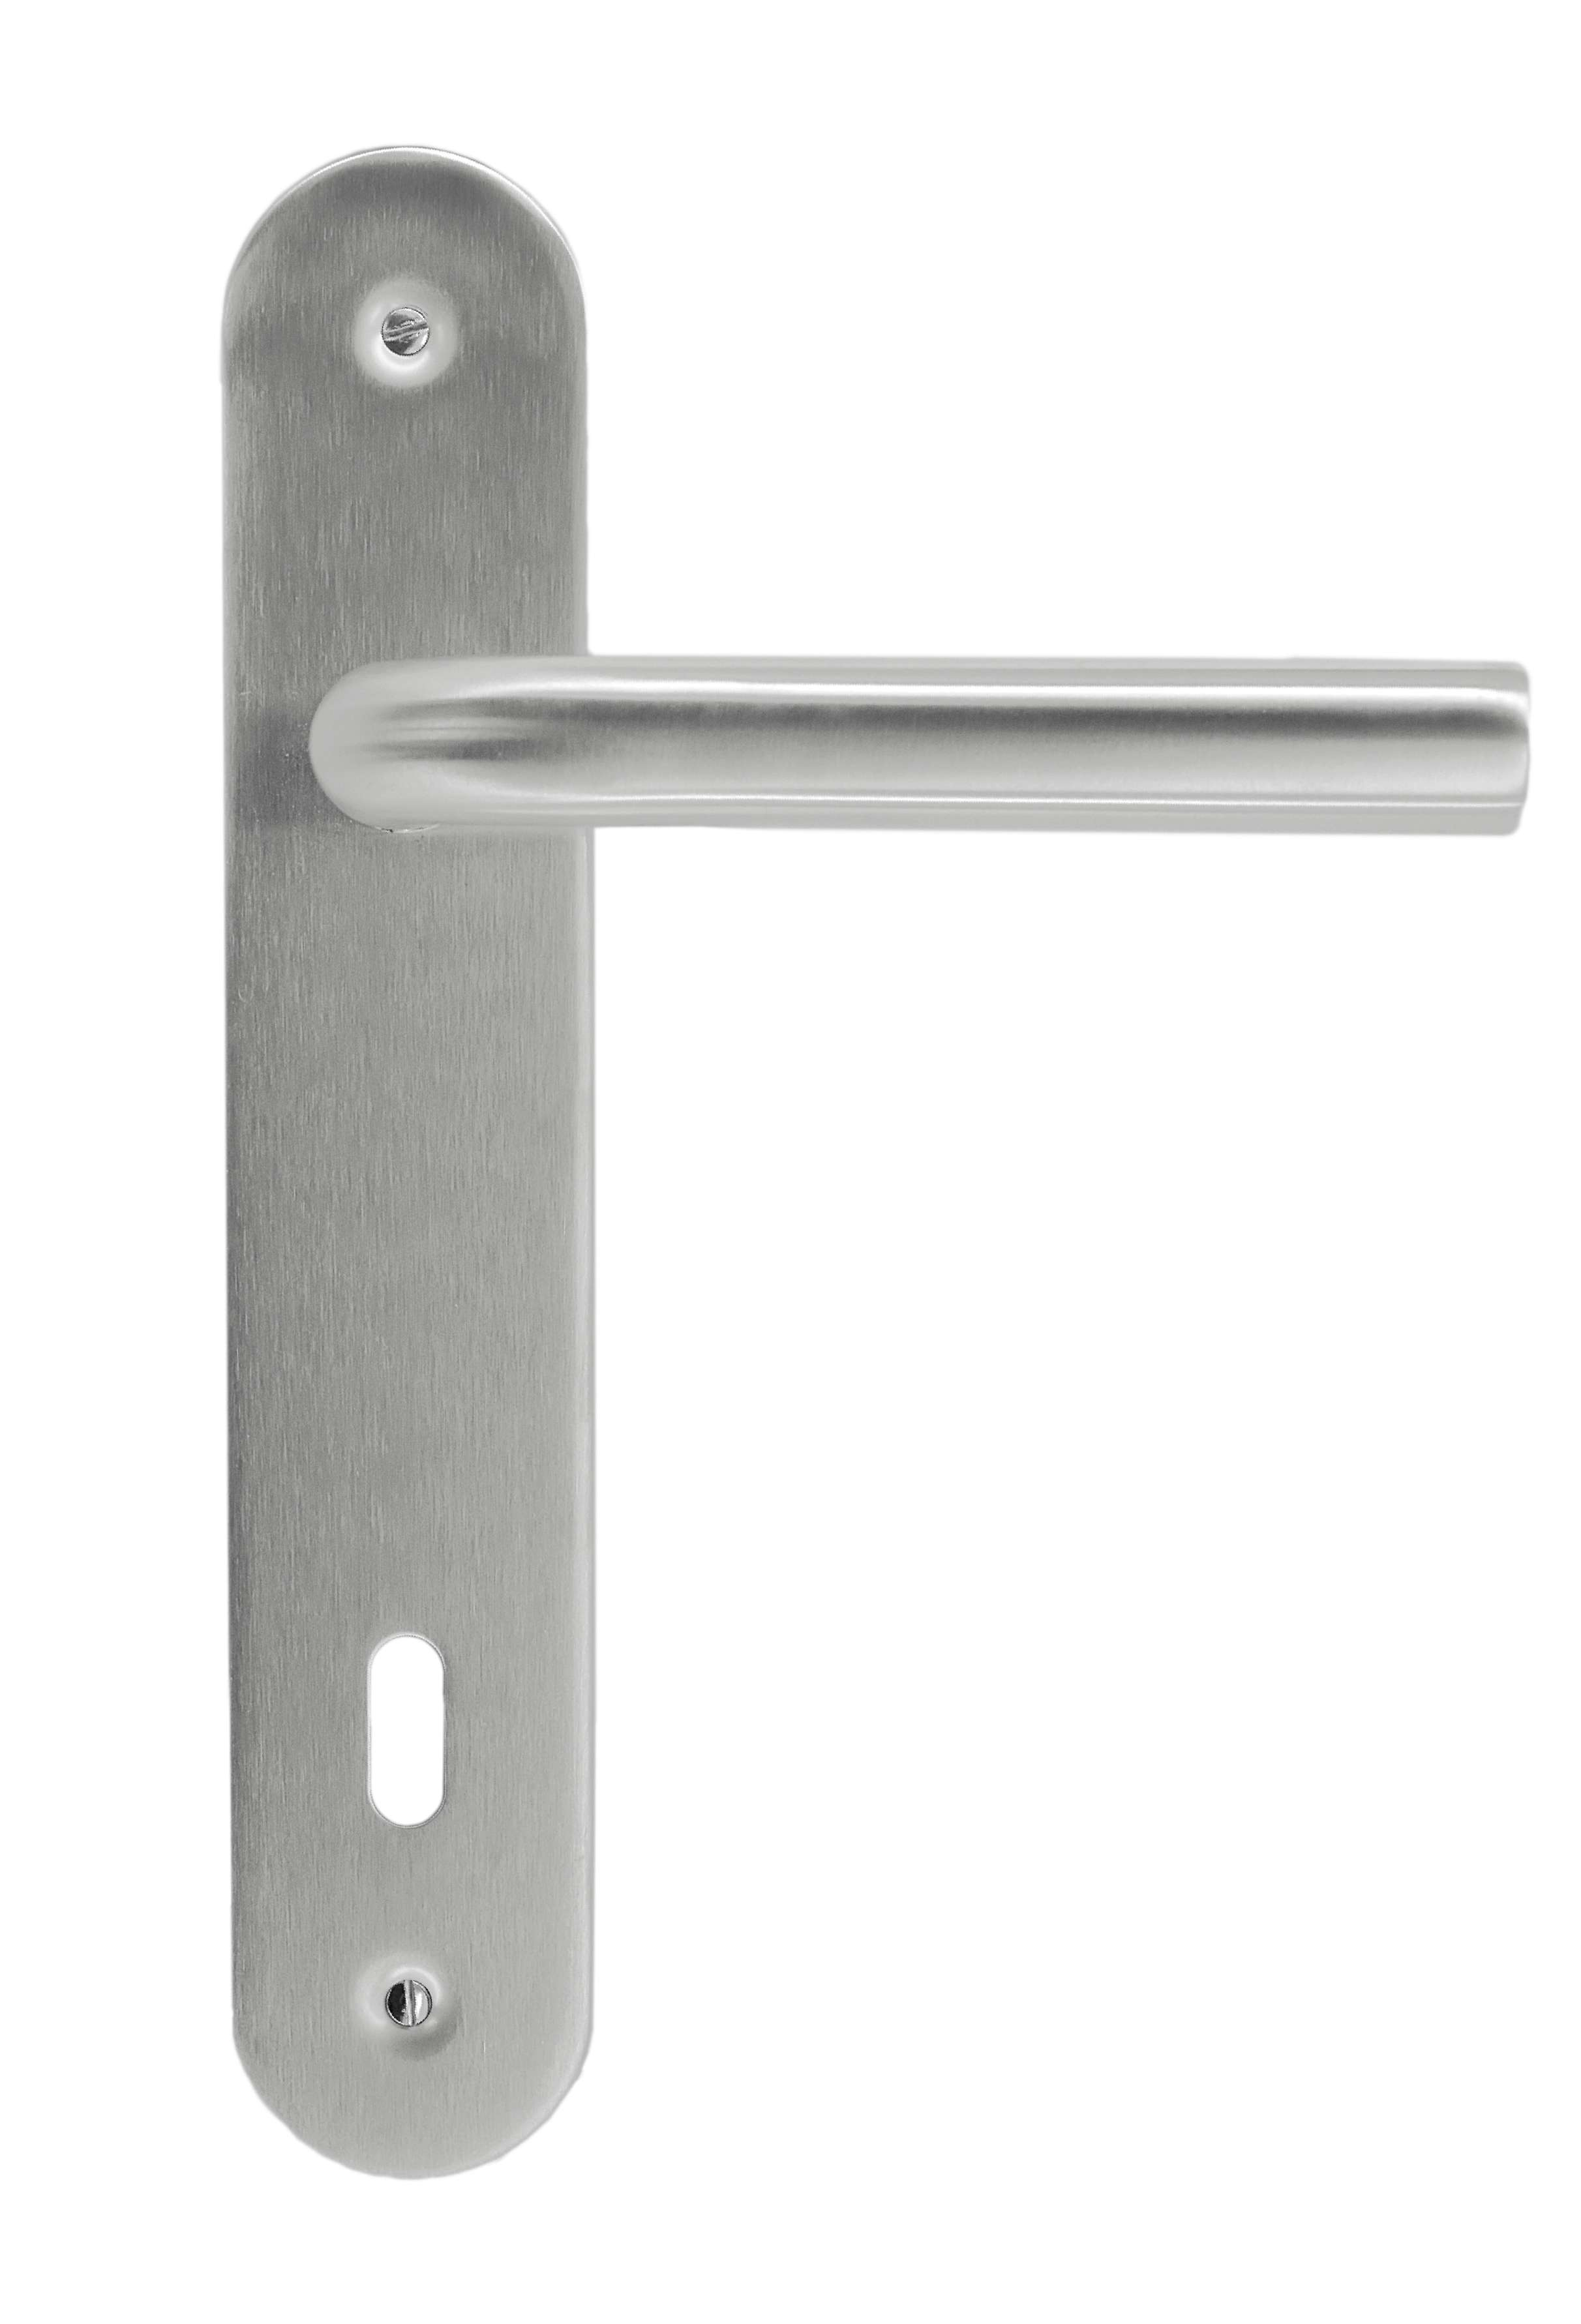 BEQUILLE pro L SHAPE 19MM INOX PLUS PLAQUE